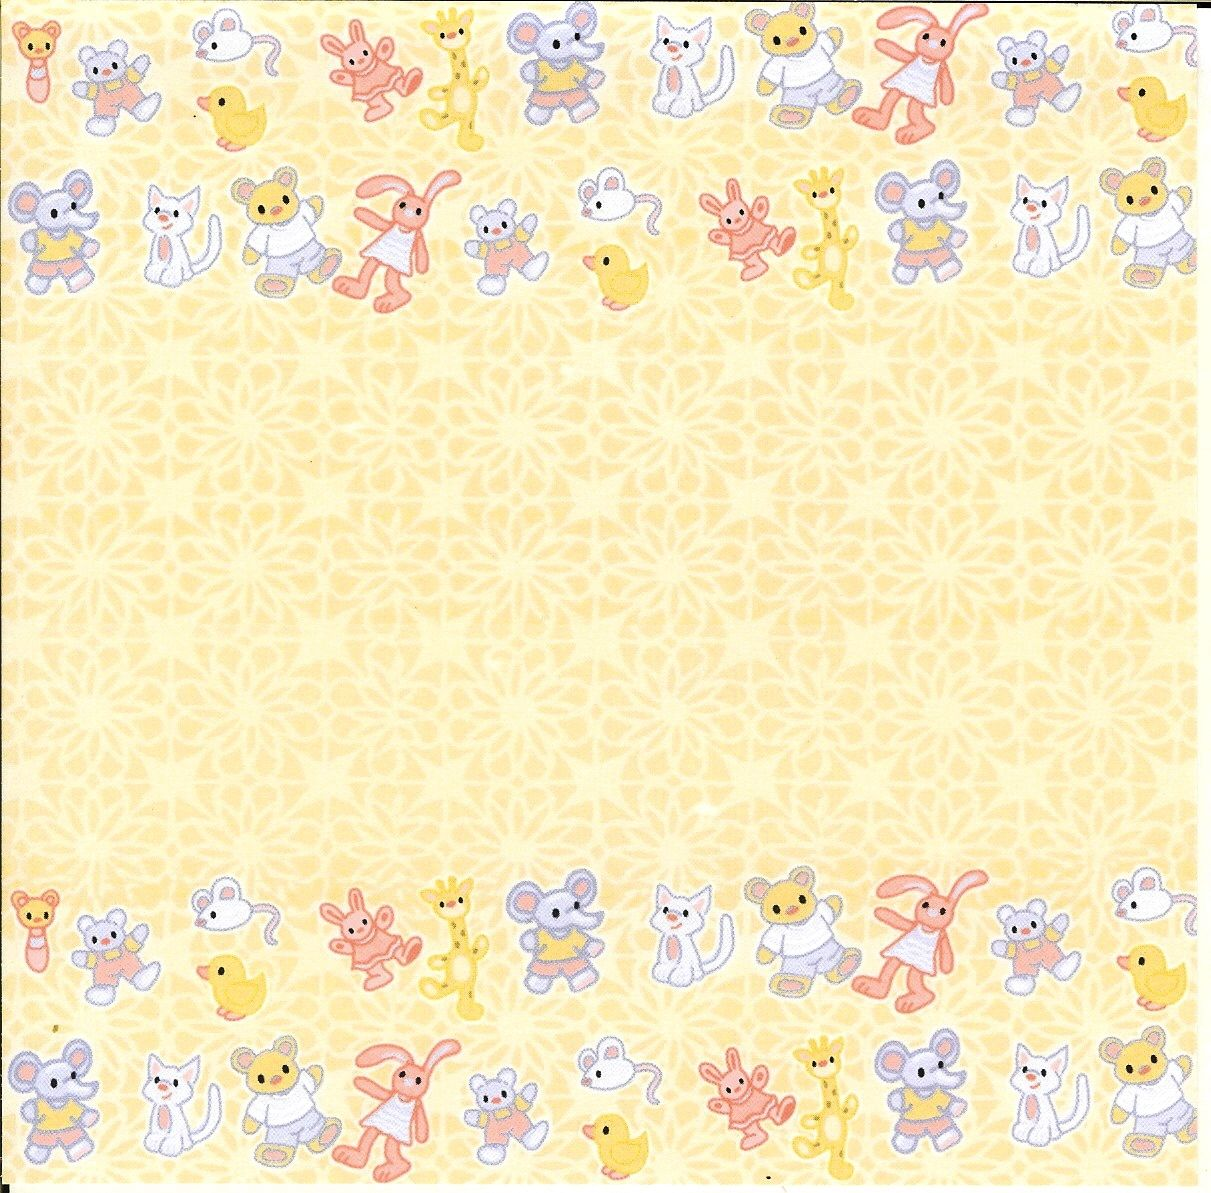 Papel Decorativo Para Bebes Baby Background Fondos P Imprimir Bebe Sobres